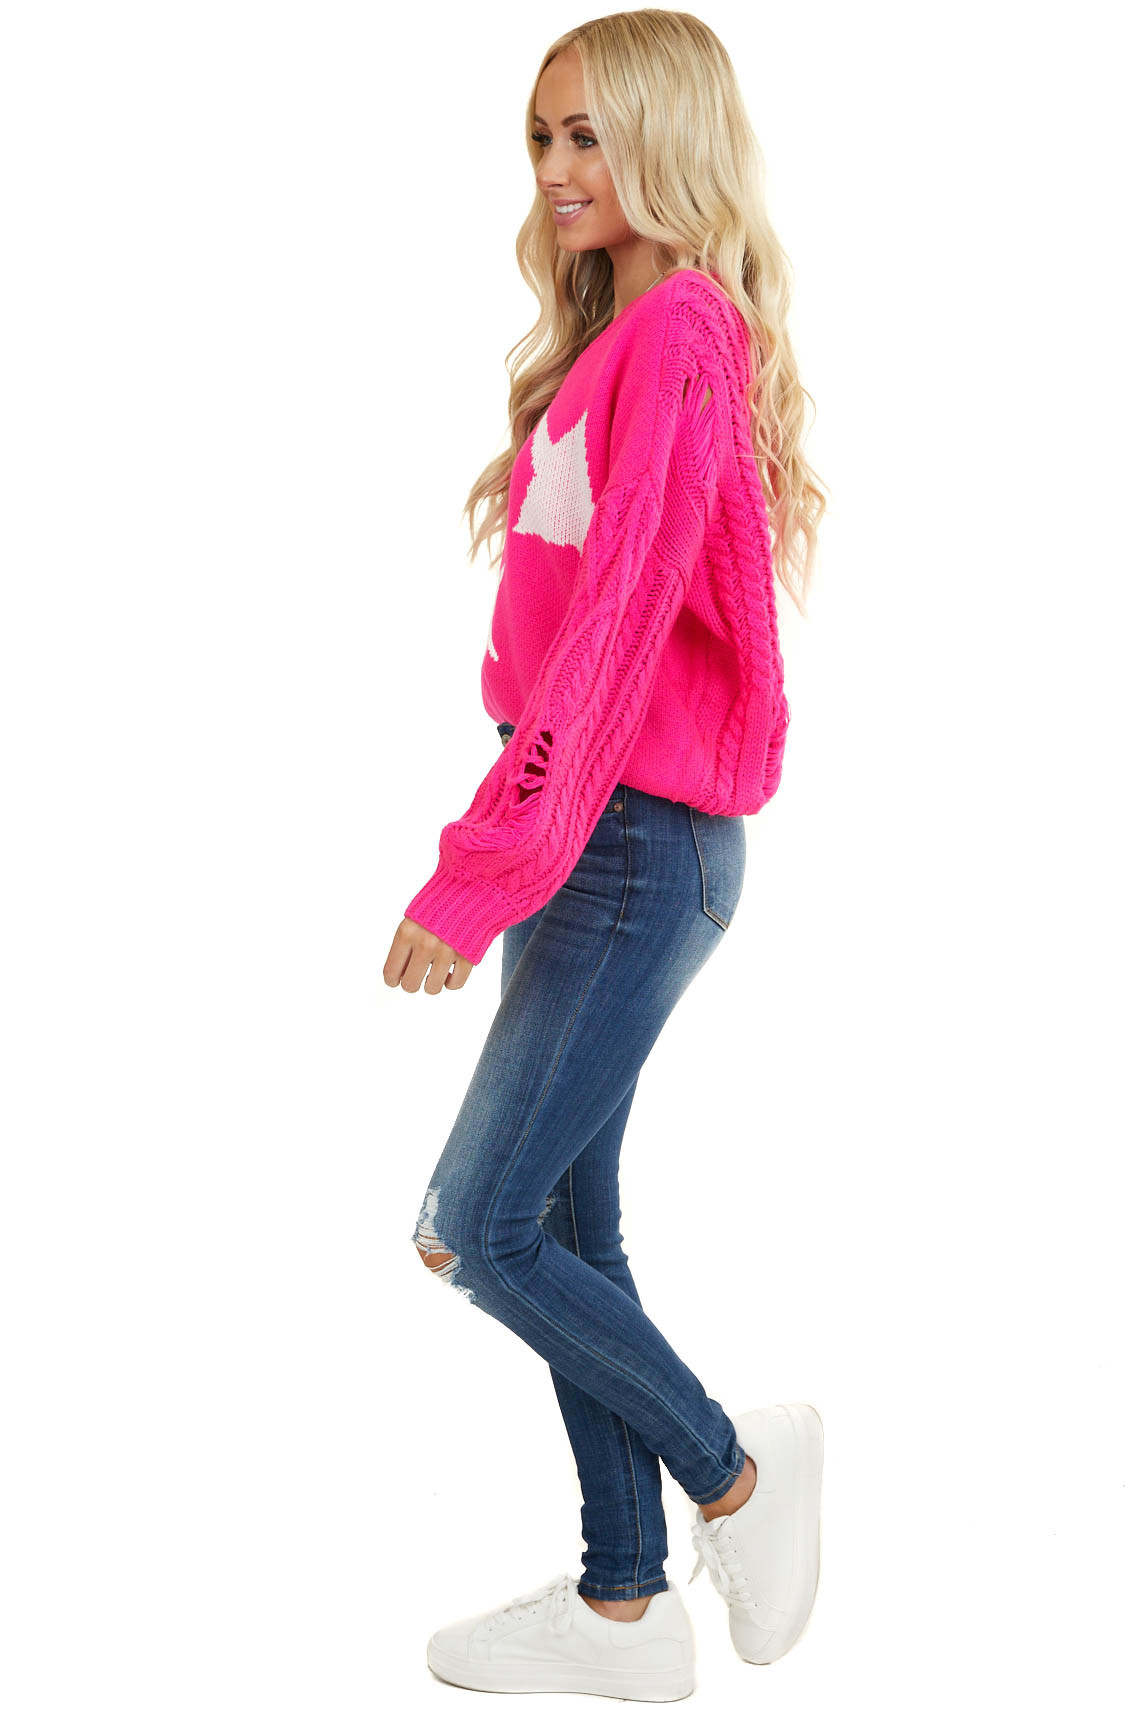 Neon Pink V Neck Sweater with Stars and Distressed Details